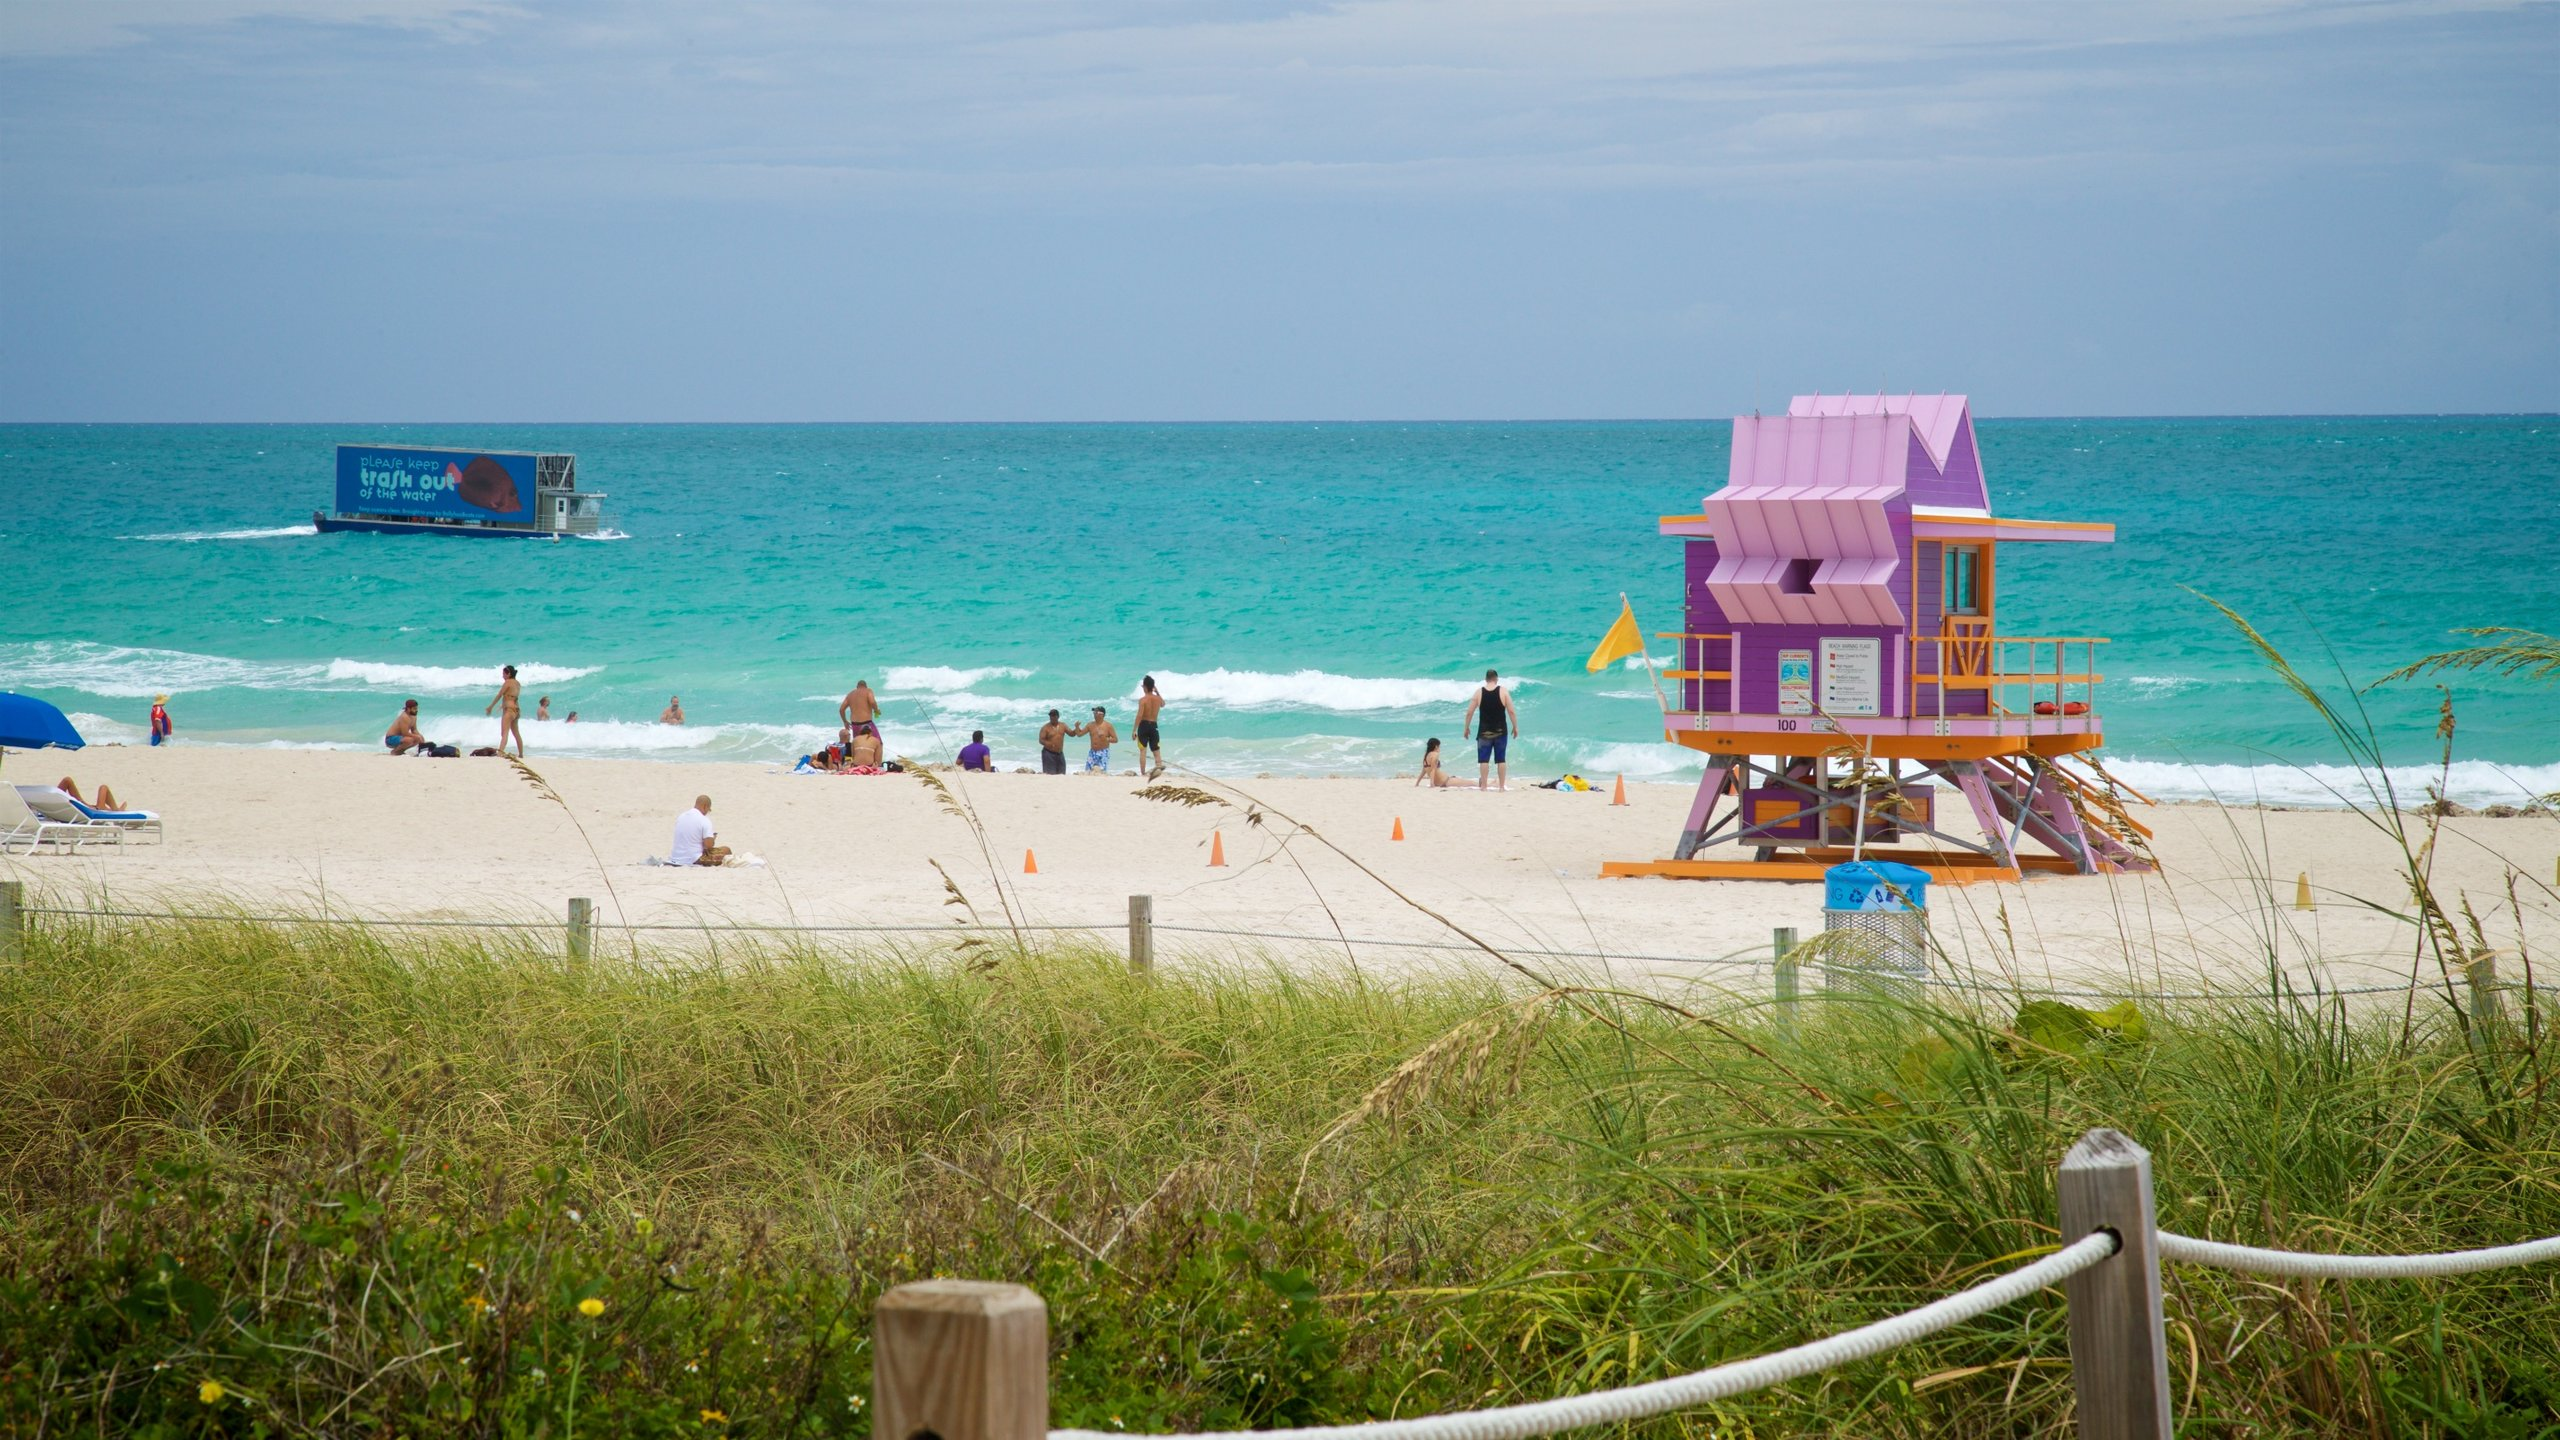 Miami Beach, Florida Hotels from $20 - Cheap Hotel Deals  Travelocity